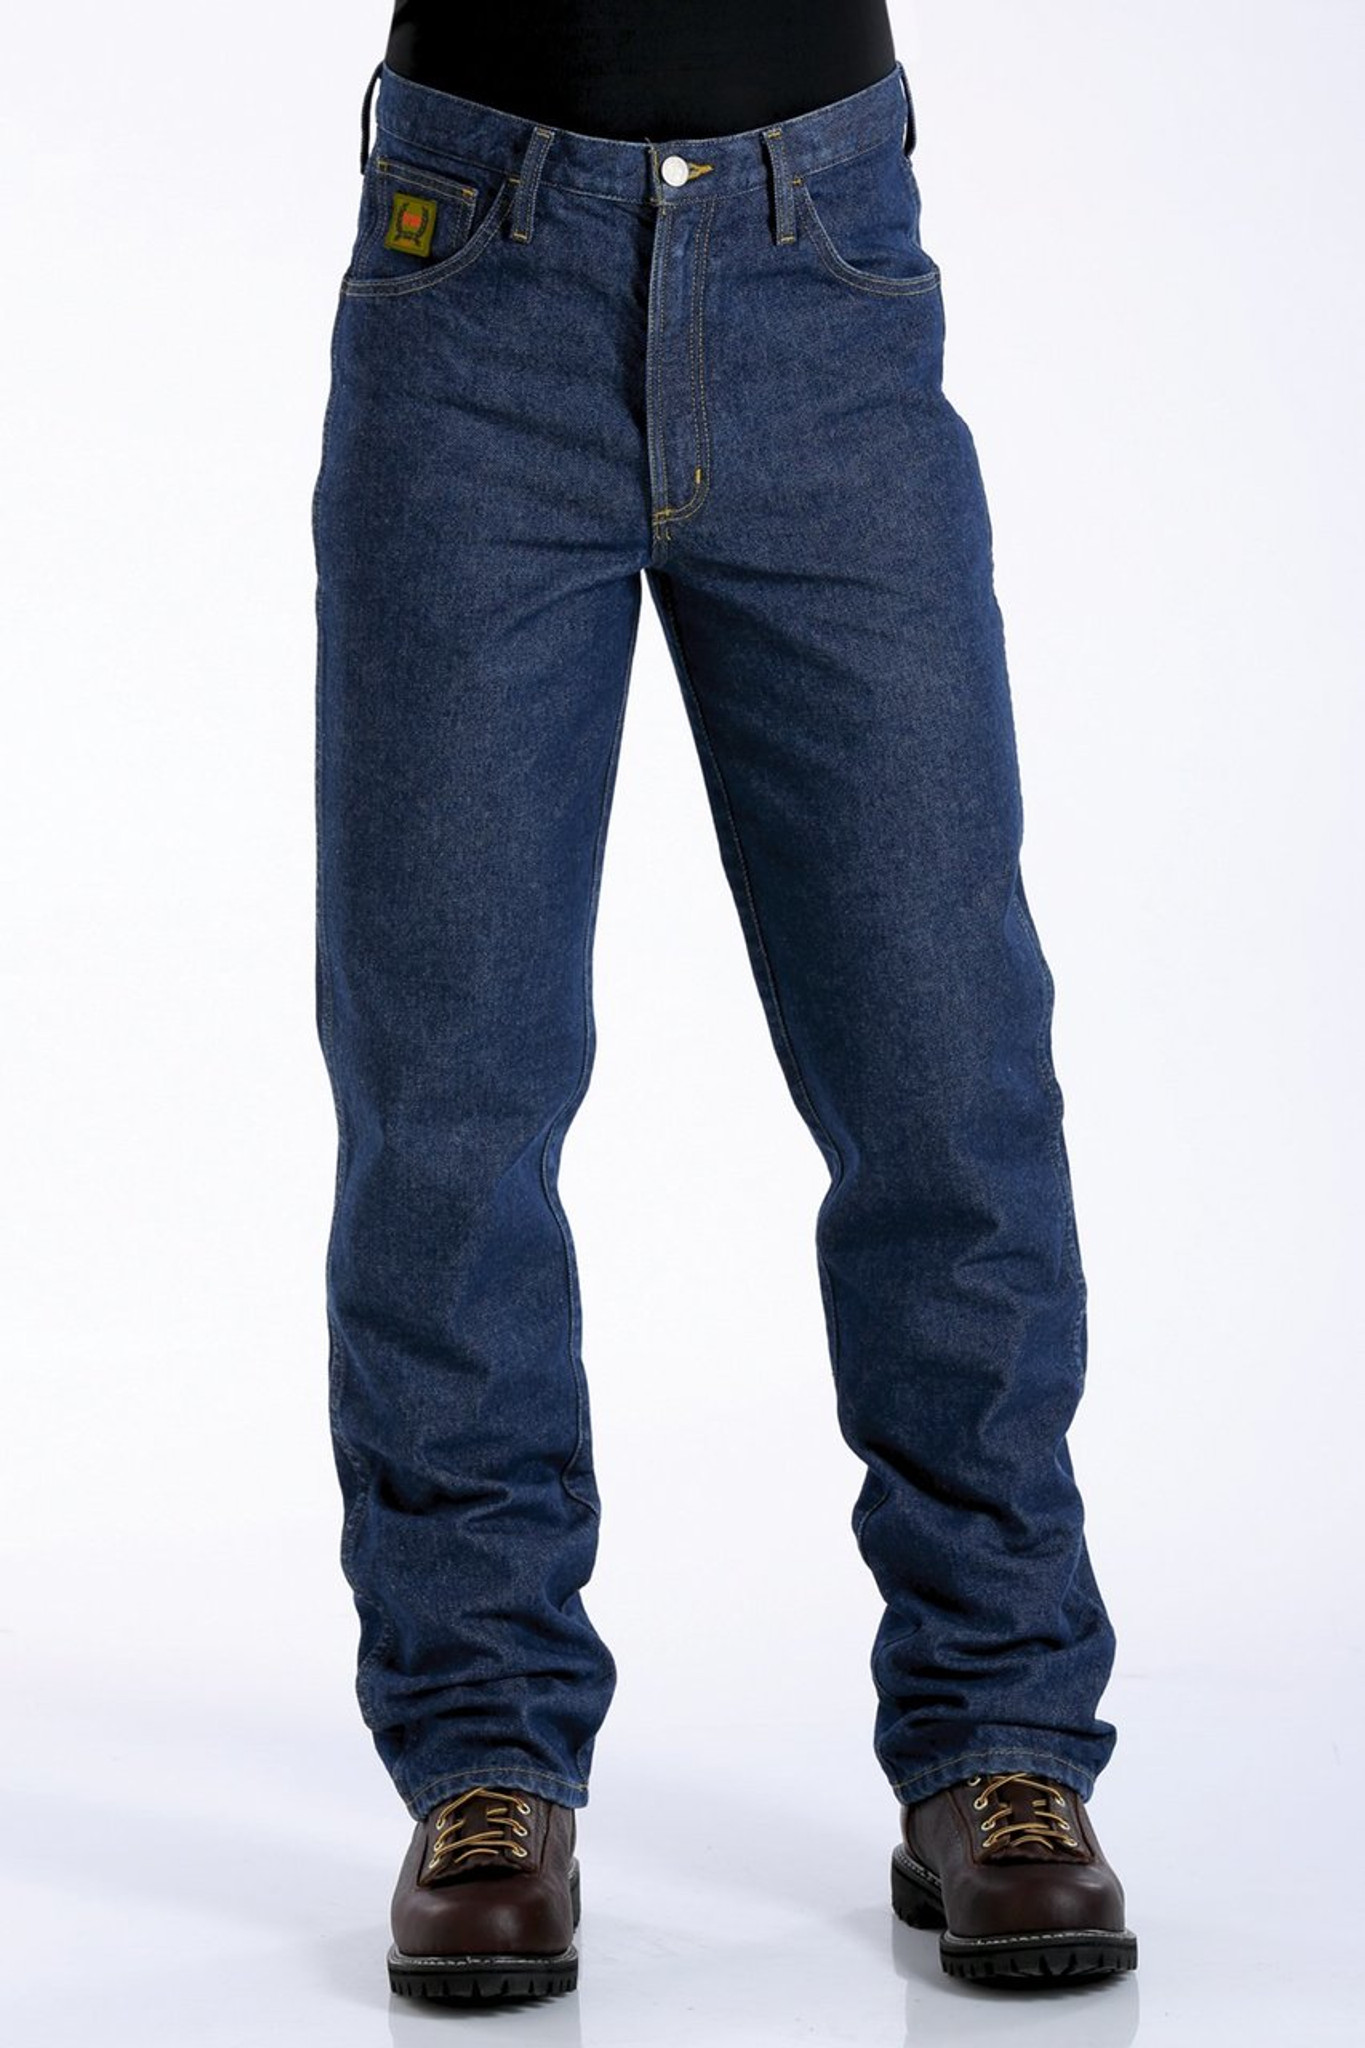 ca654352 Men's Cinch Jeans, Green Label, WRX FR - Chick Elms Grand Entry ...